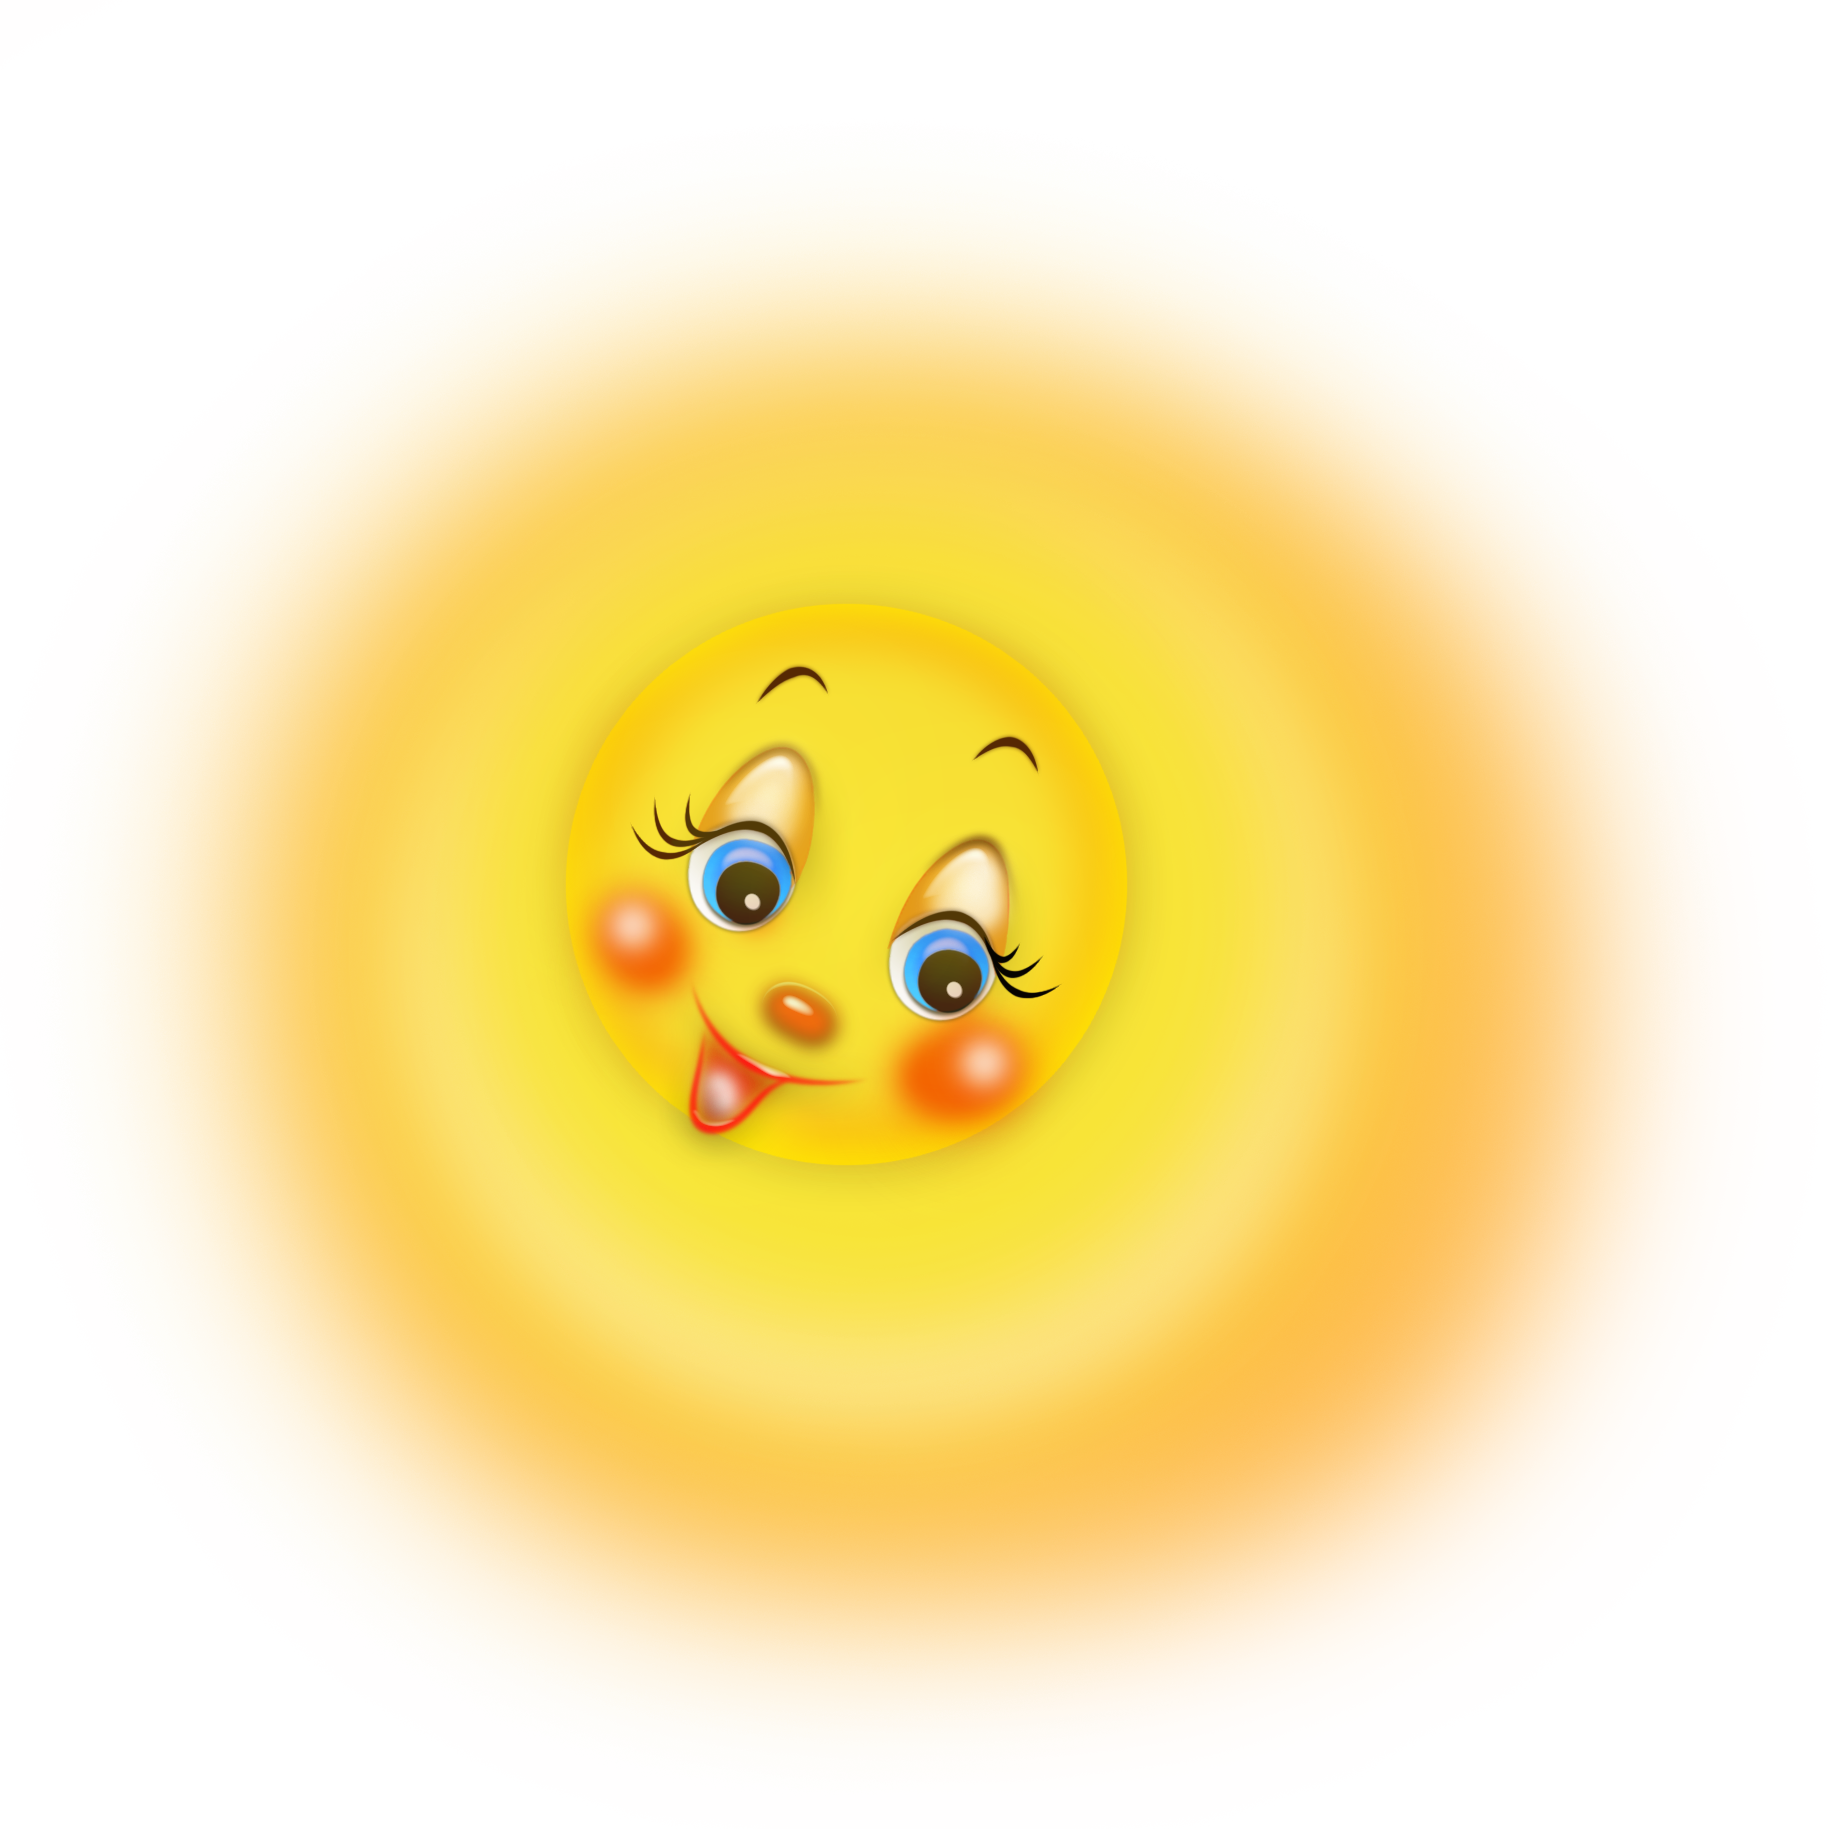 Transparent Cartoon Cute Sun PNG Clipart Picture.